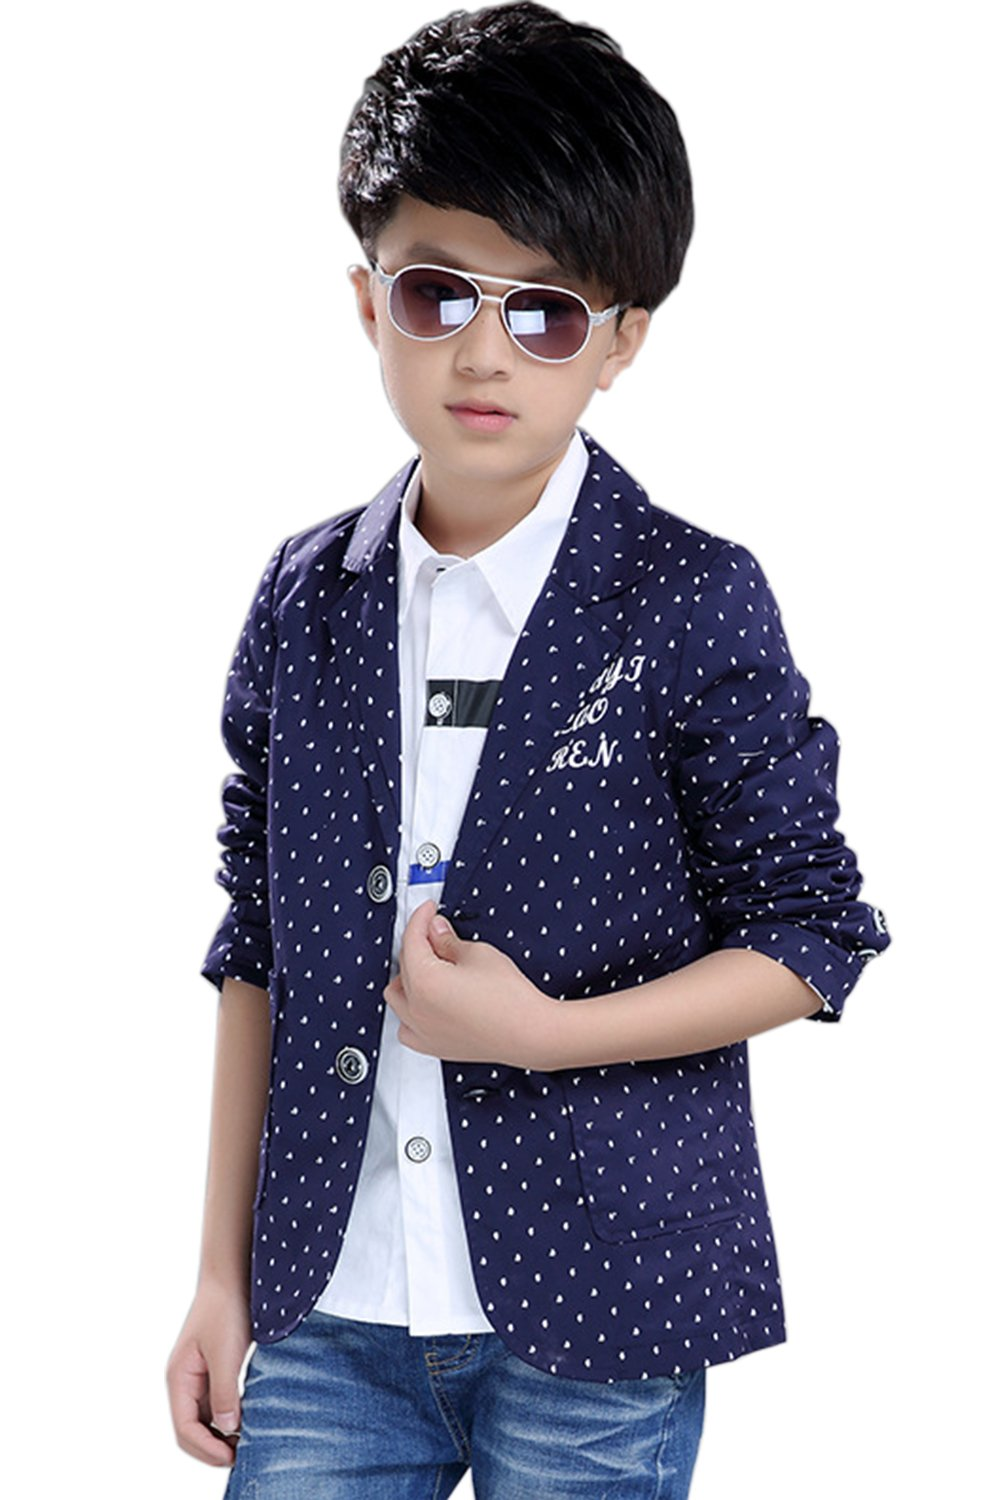 Boys' Fashion Suit Pocket Blazers Casual Jackets for Kids Size 2-12T